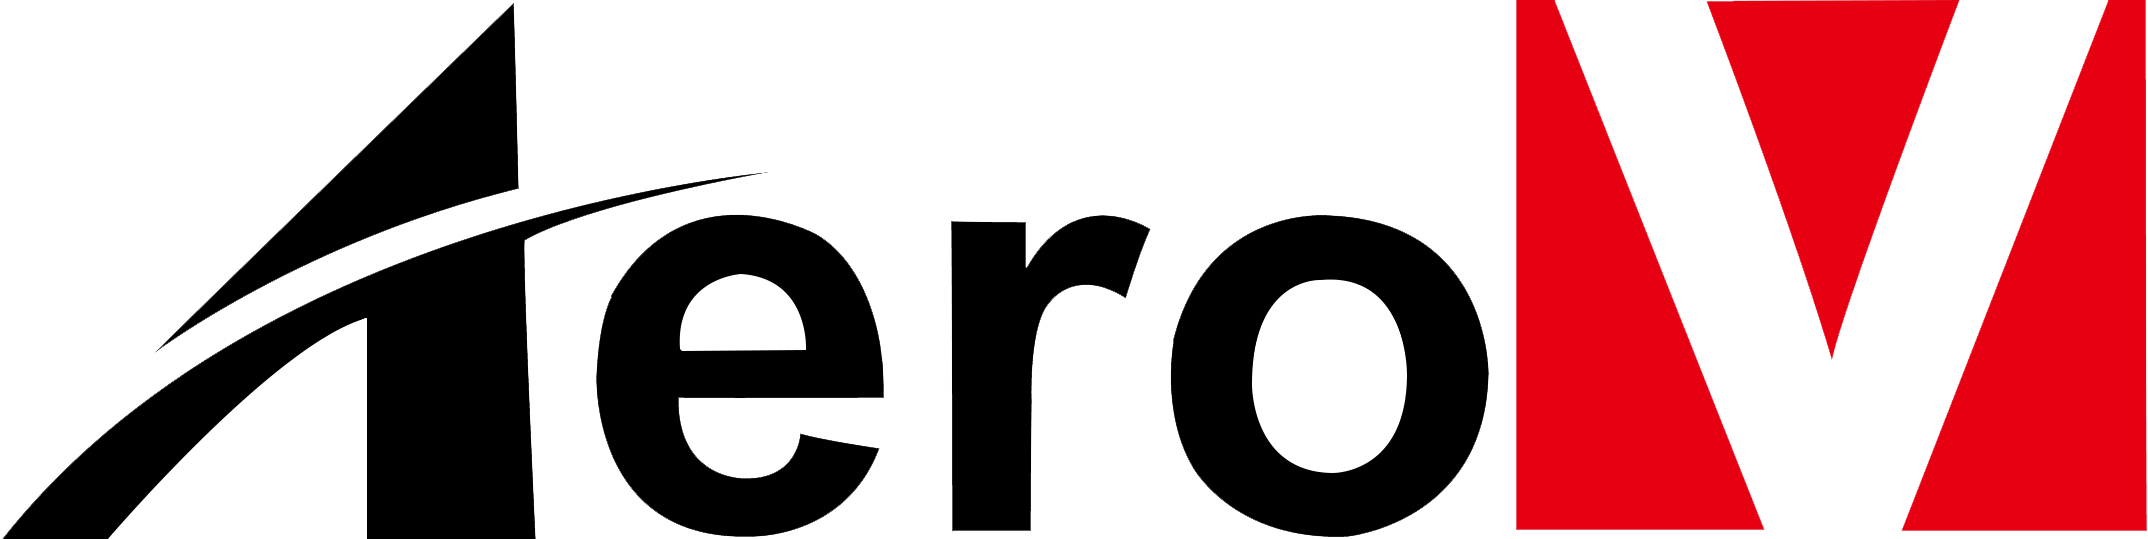 AeroV Logo(high resolution)